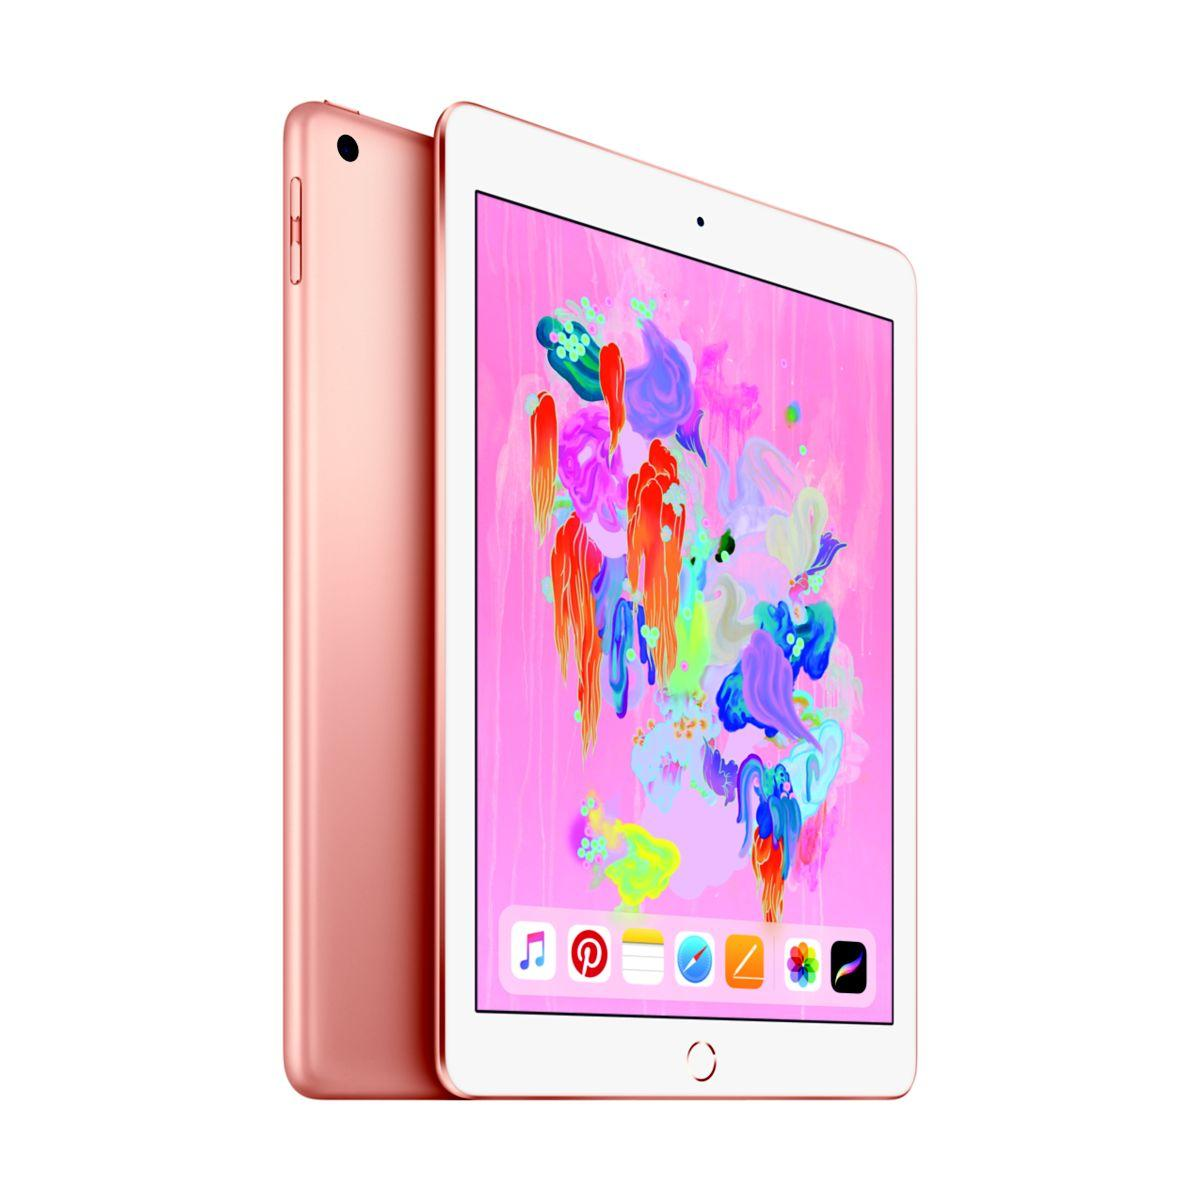 Tablette apple ipad new 32go cell or (photo)